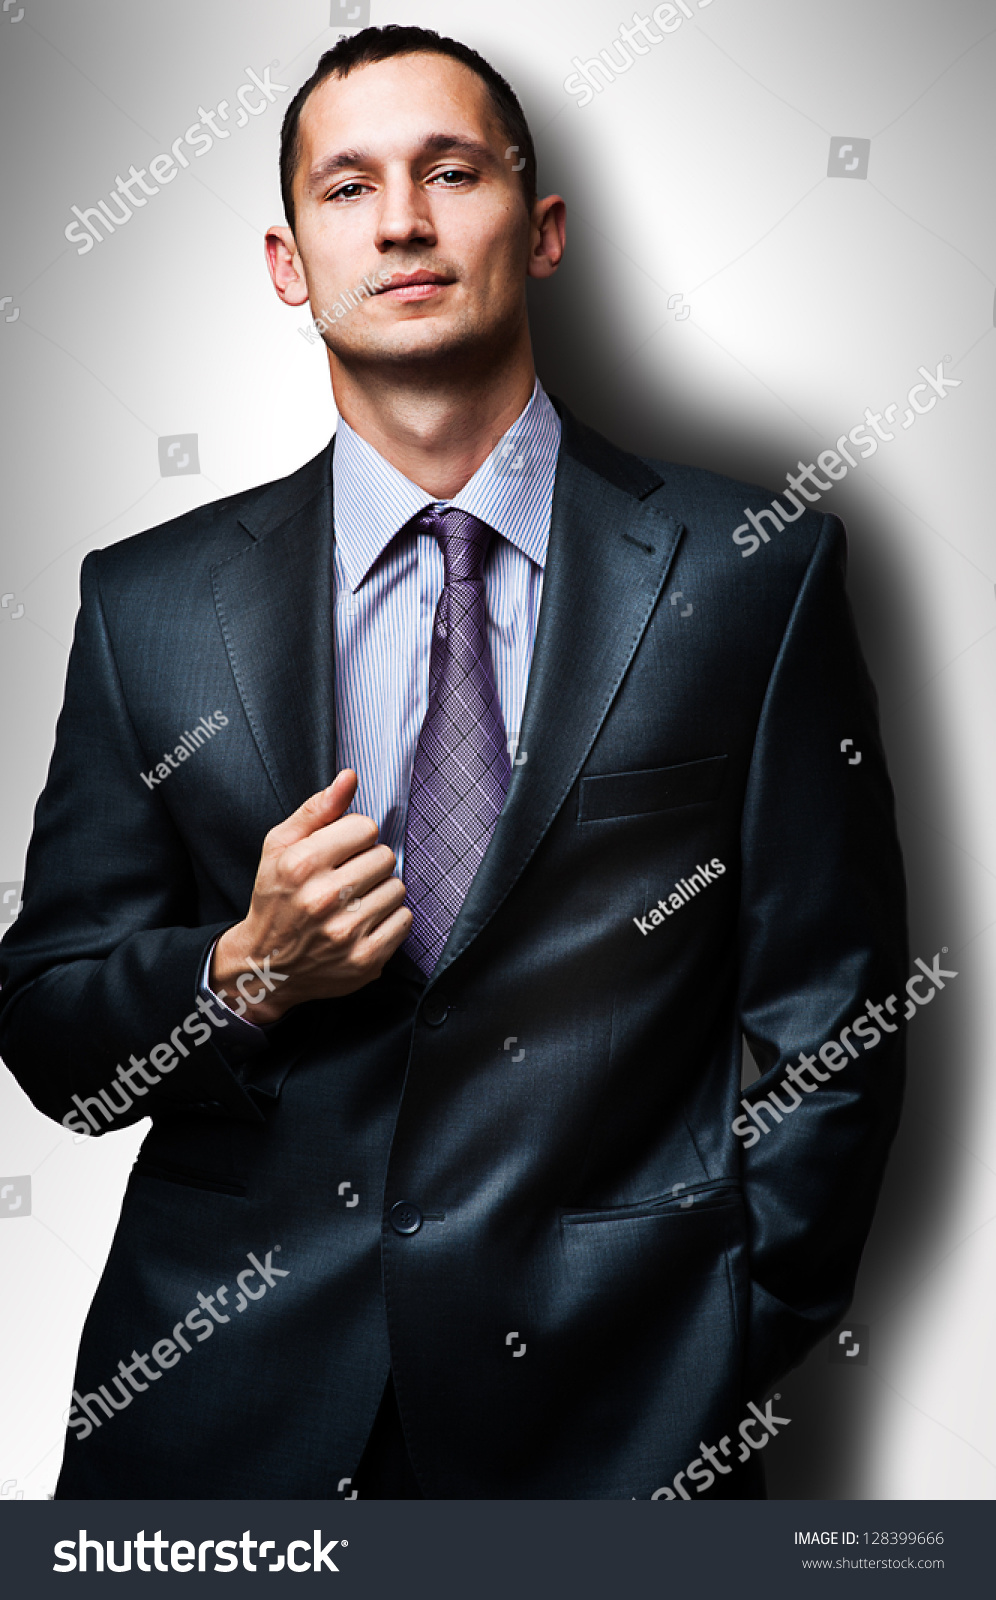 Young Handsome Man Wearing Suit And Tie Stock Photo ...